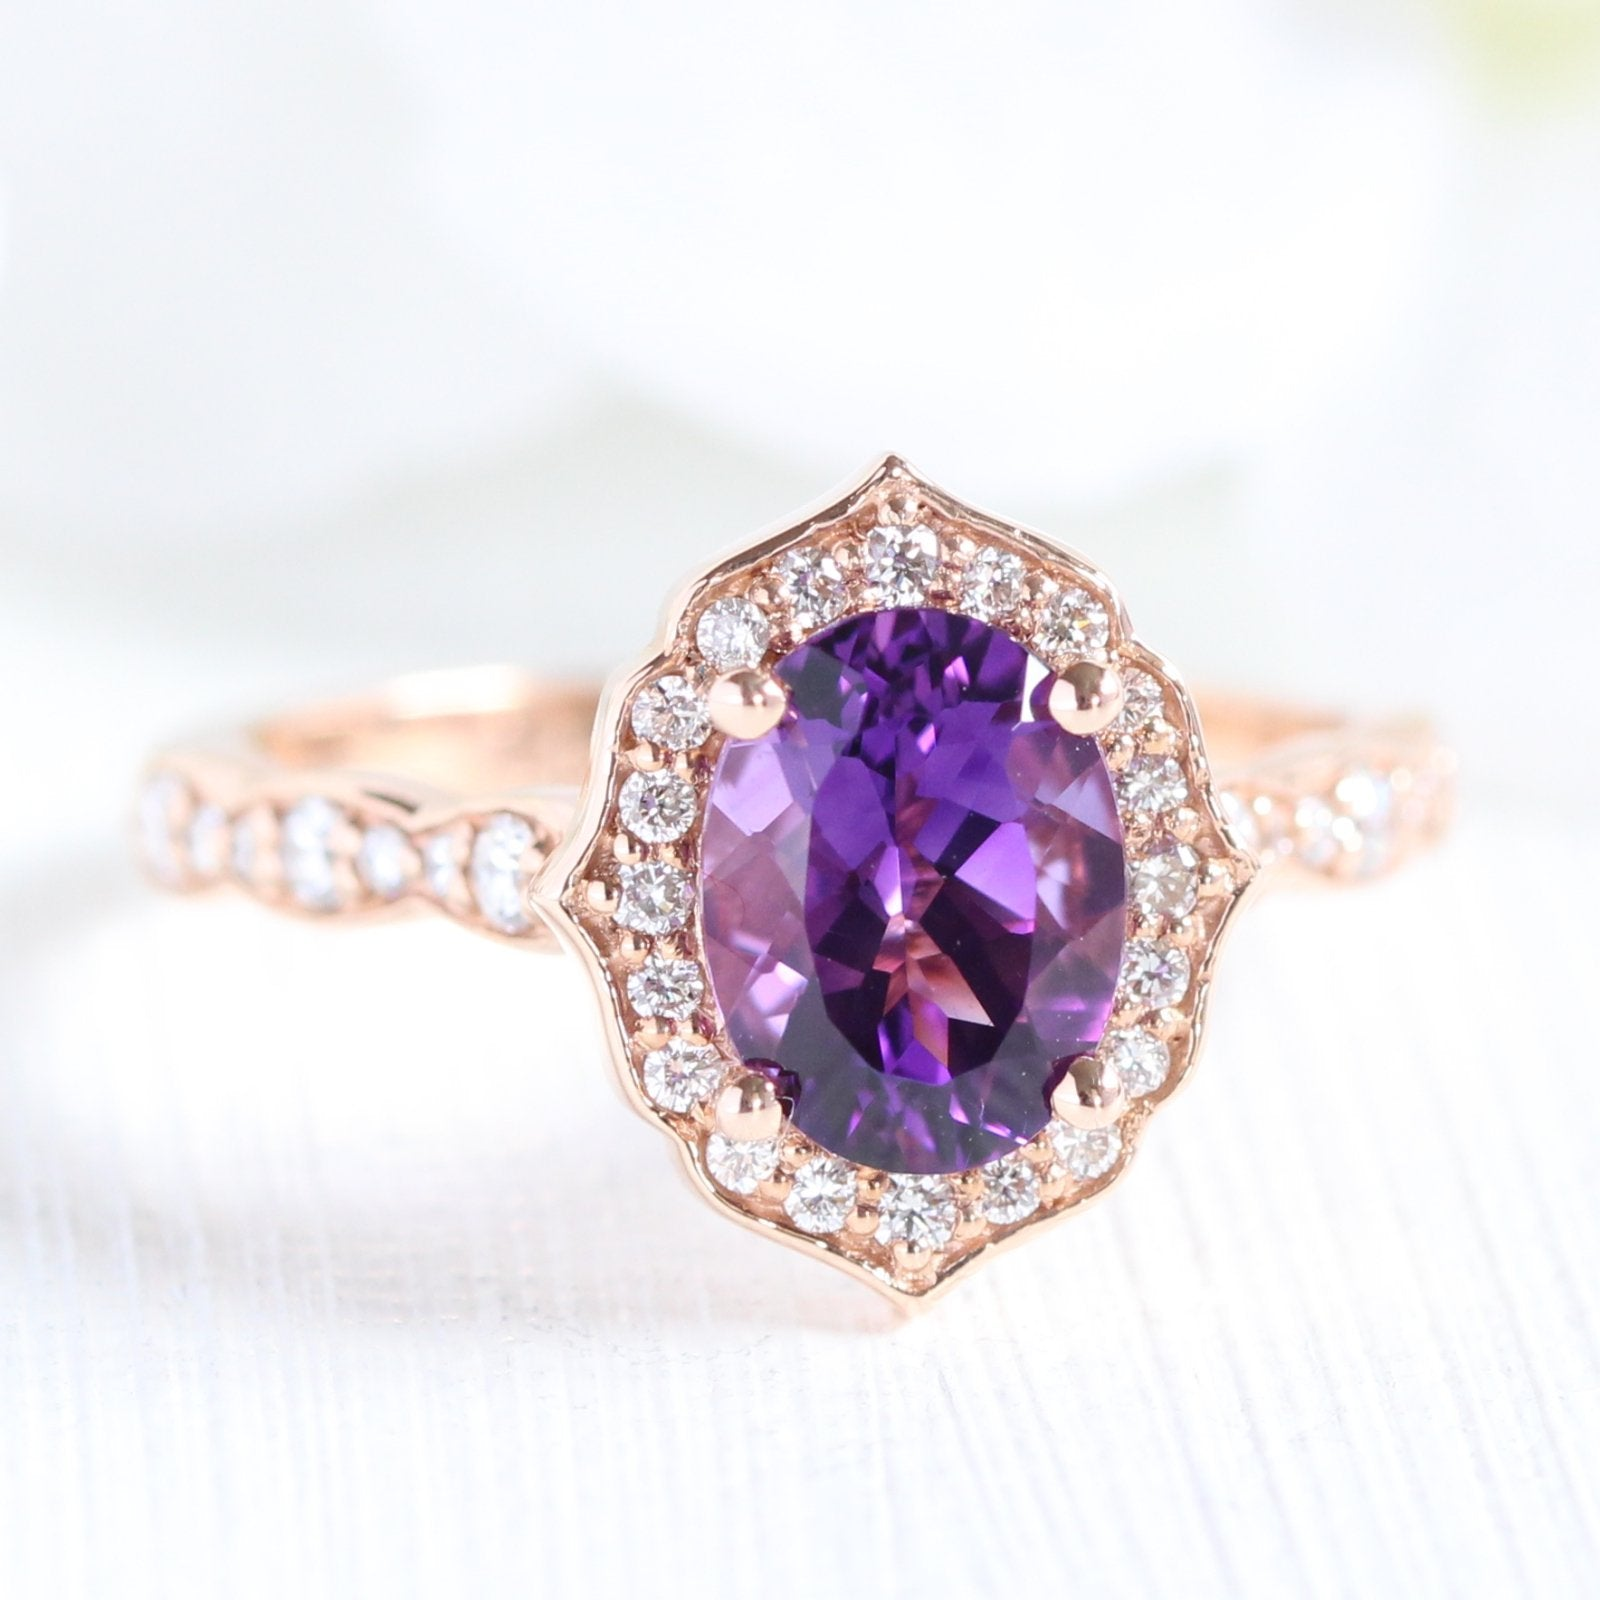 Vintage Floral Oval Ring In Scalloped Band W Amethyst And Diamond La More Design